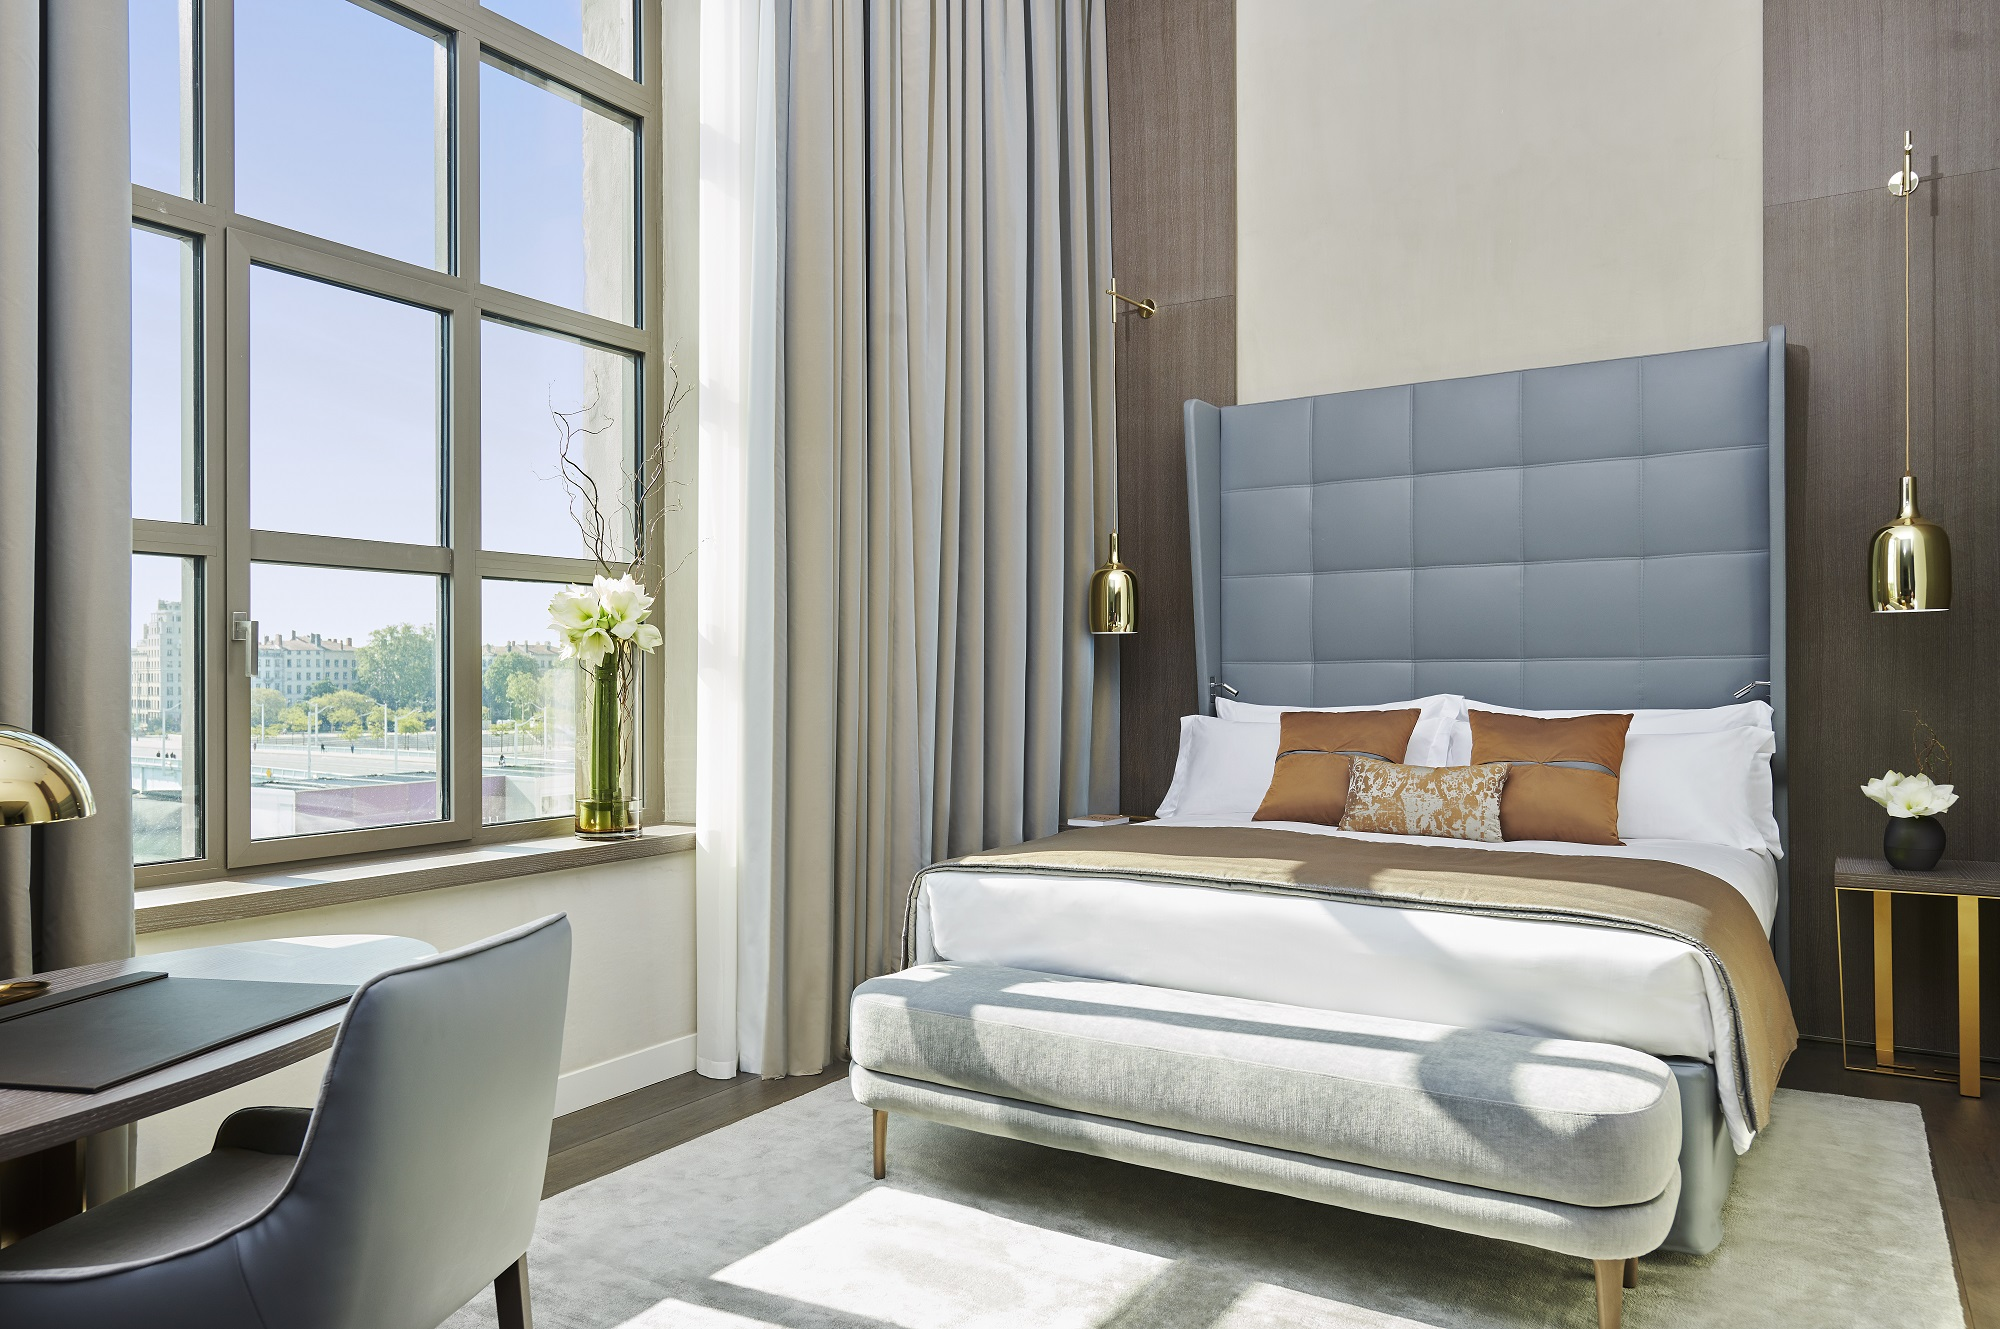 Executive River View Rooms